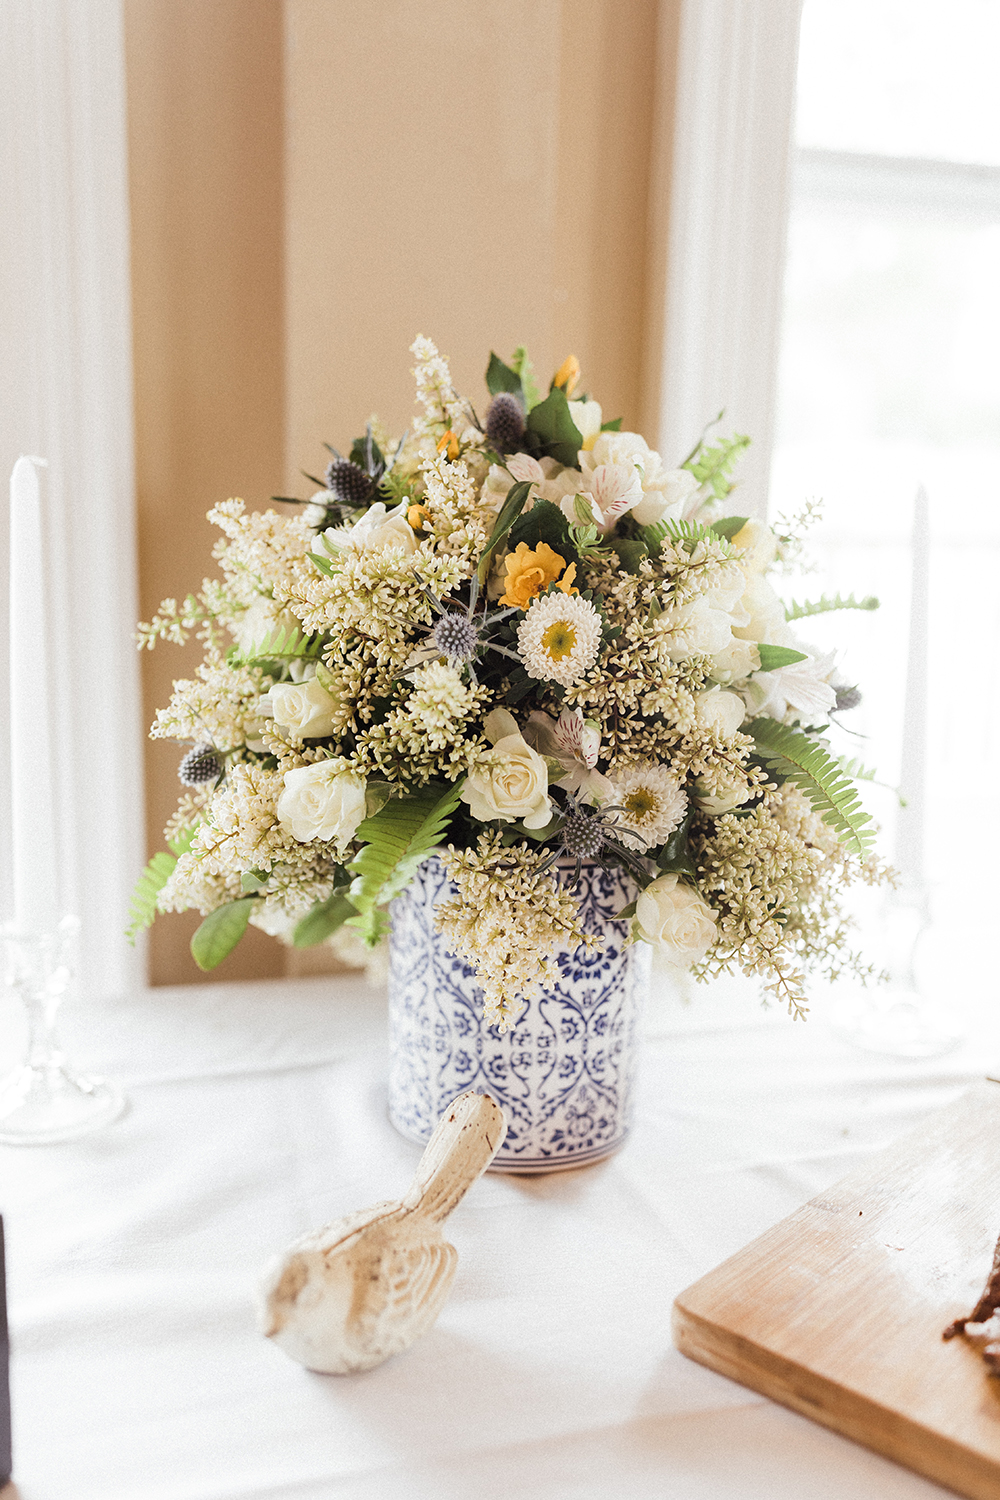 Flowers in Blue & White Vase as Wedding | photo by Ash Simmons Photography | featured on I Do Y'all